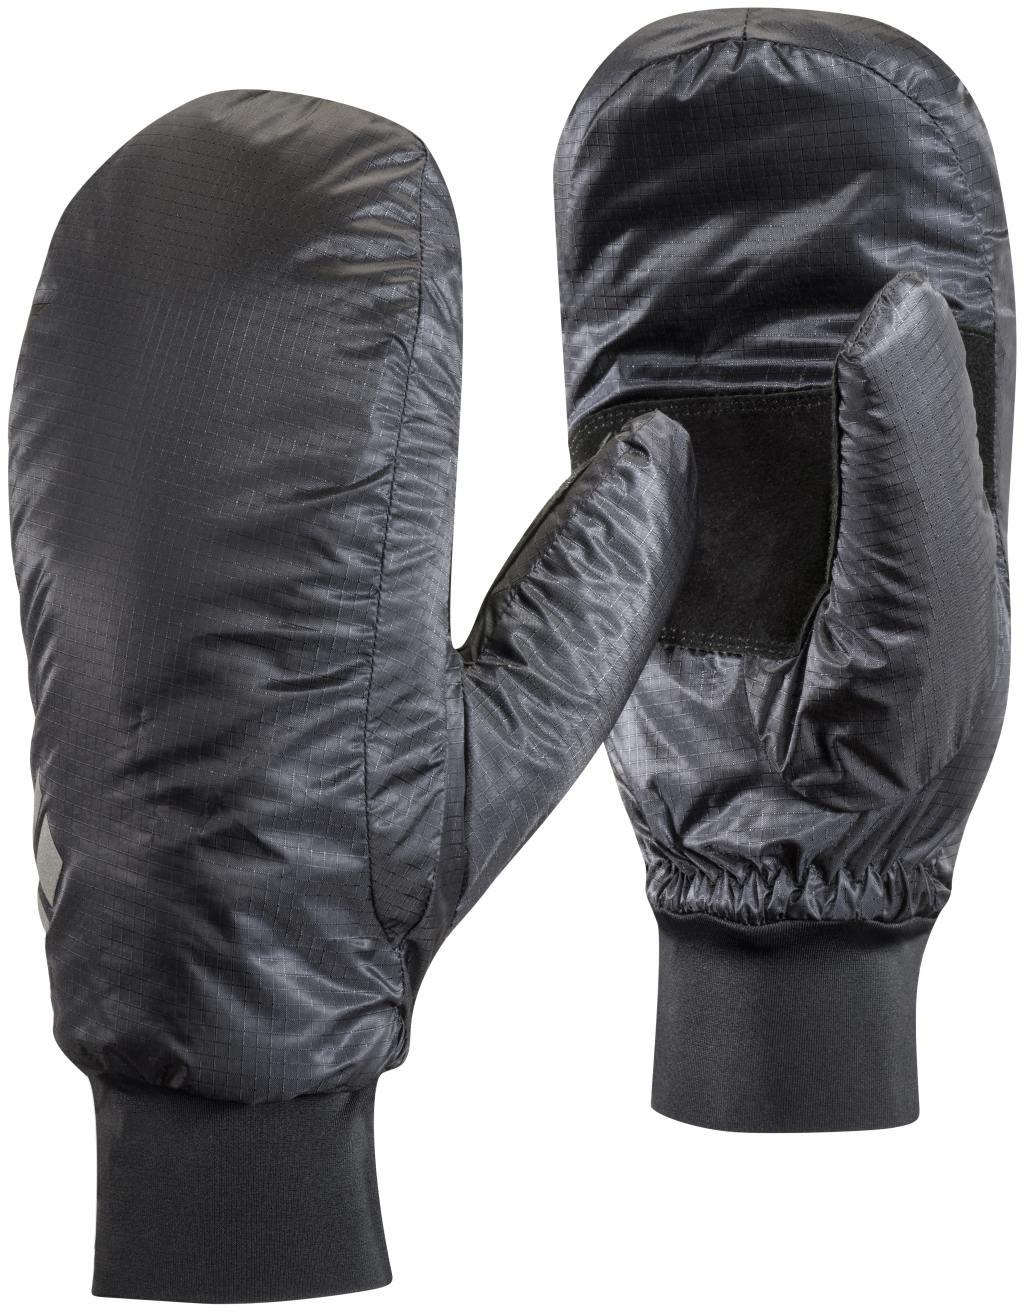 Black Diamond Stance Mitts Black-30